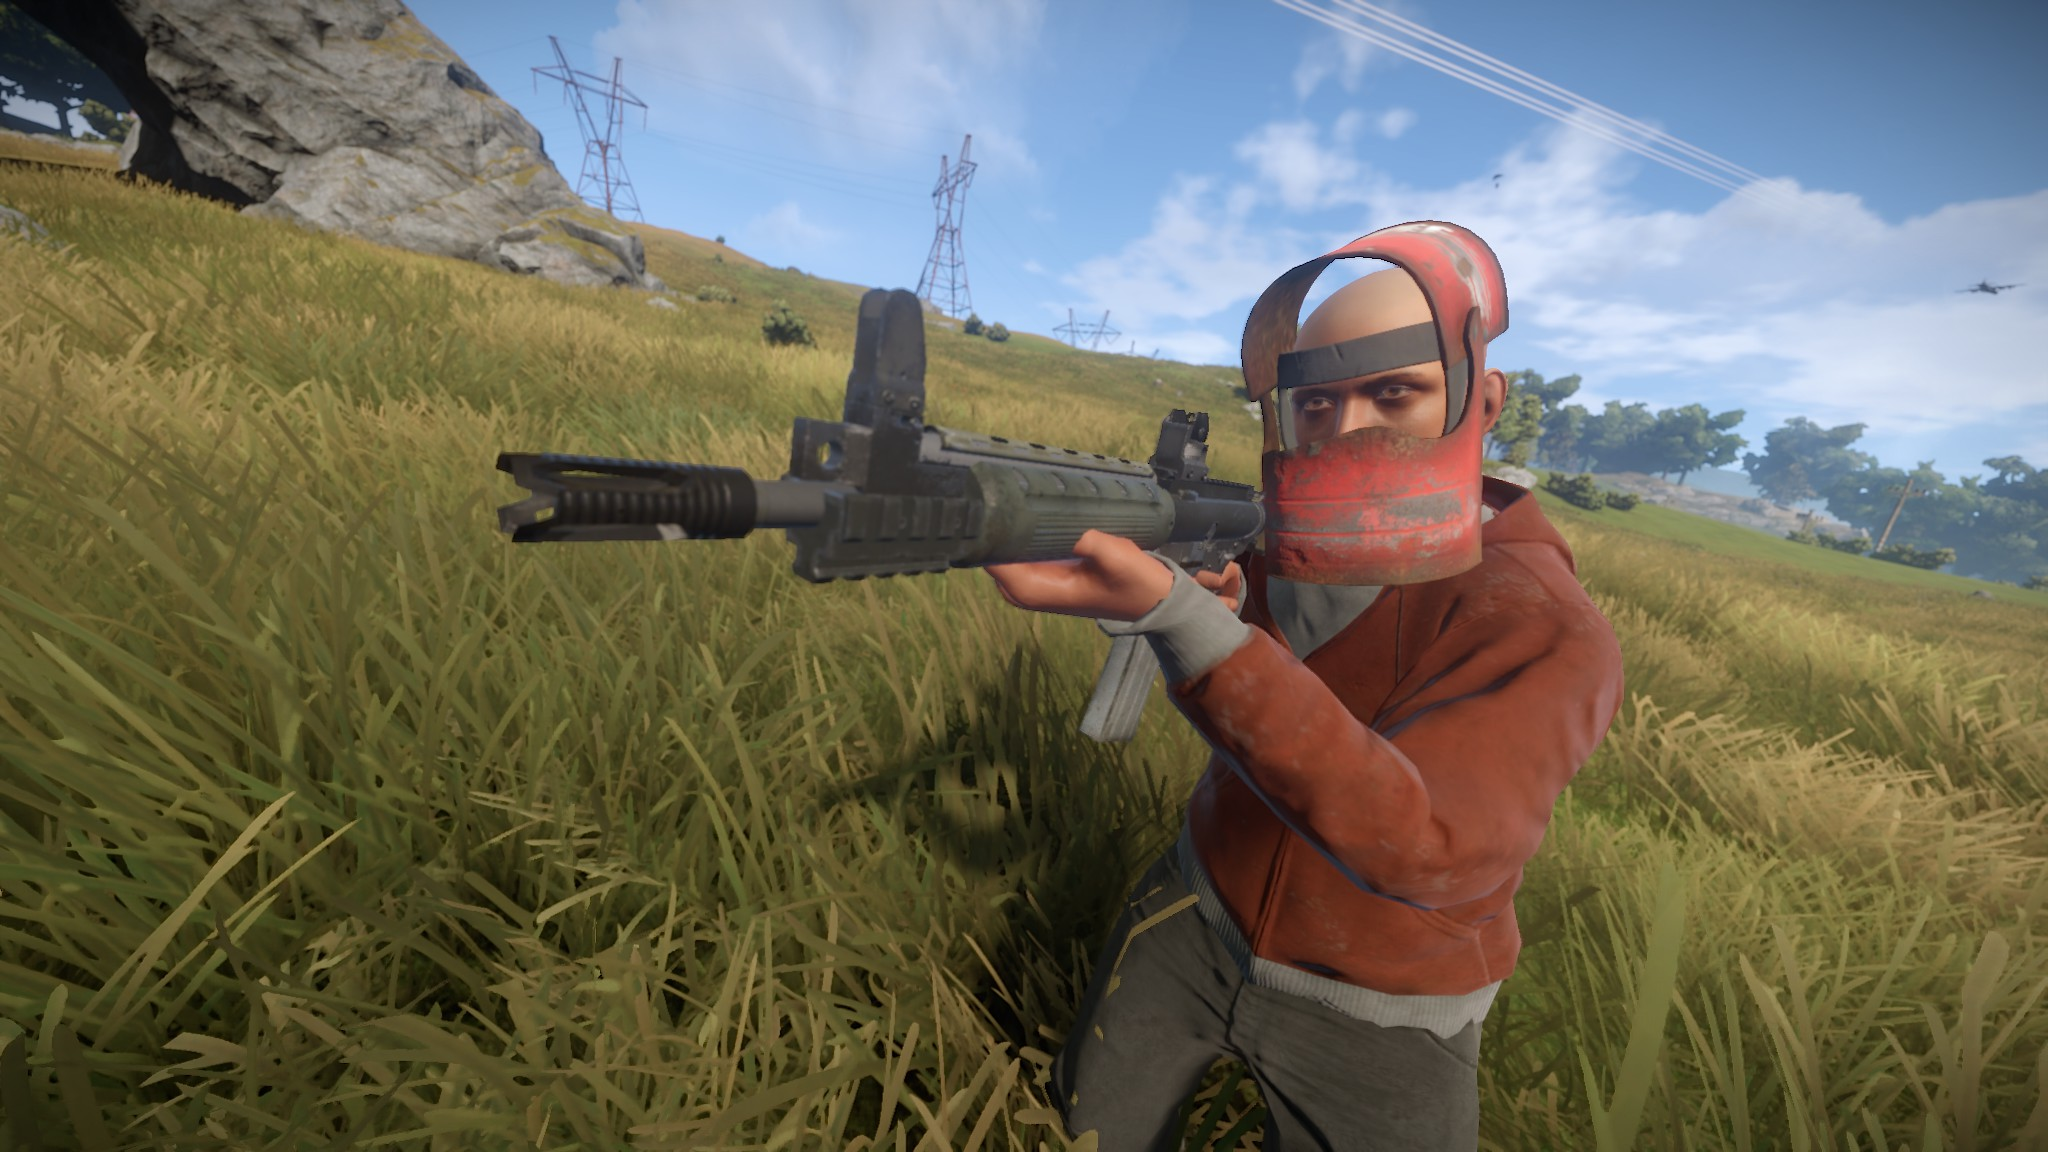 where can i get a helicopter in gta 5 with Devblog 124 on Greek Islands Map together with 1100 6445084 likewise T1906874 Stealing Cargobob besides Grand Theft Auto V Cheats Codes And Secrets For Playstation additionally Purchase Your Very Own Cargobob Helicopter Gta 5 Online 0150037.